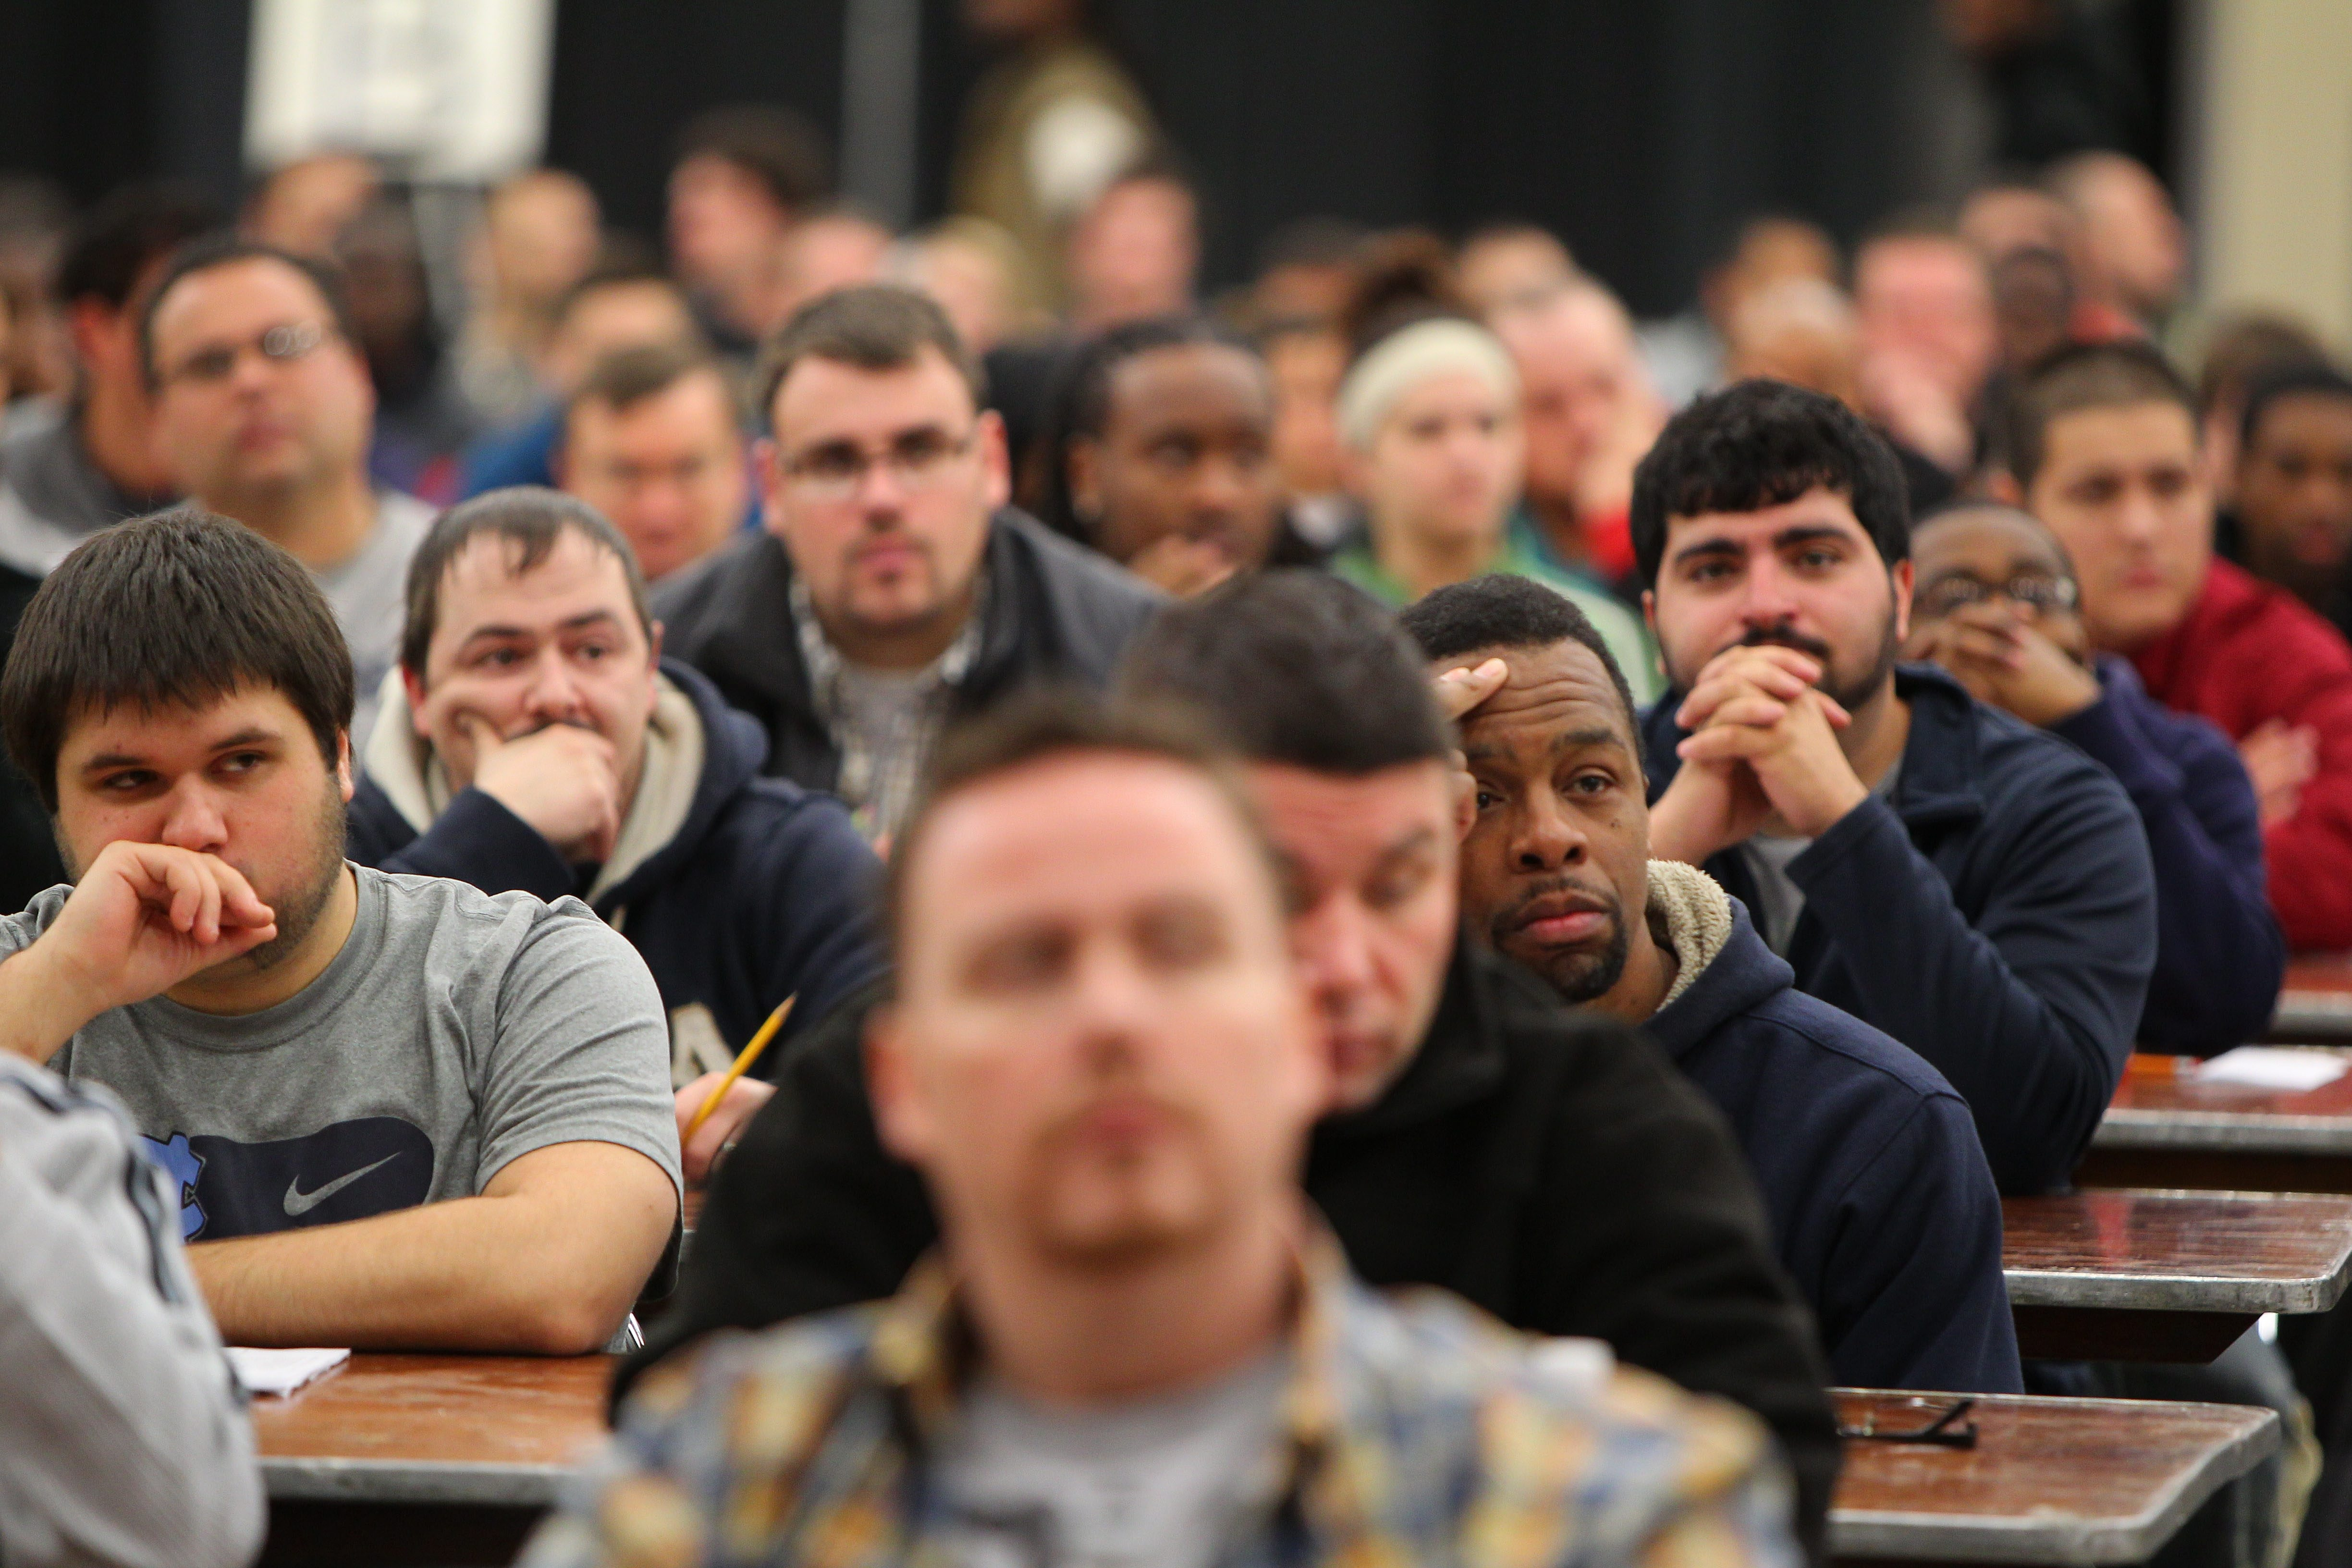 Prospective Buffalo firefighters prepare to take a civil service exam Tuesday in the Buffalo Niagara Convention Center. There currently are about 75 open positions in the department.